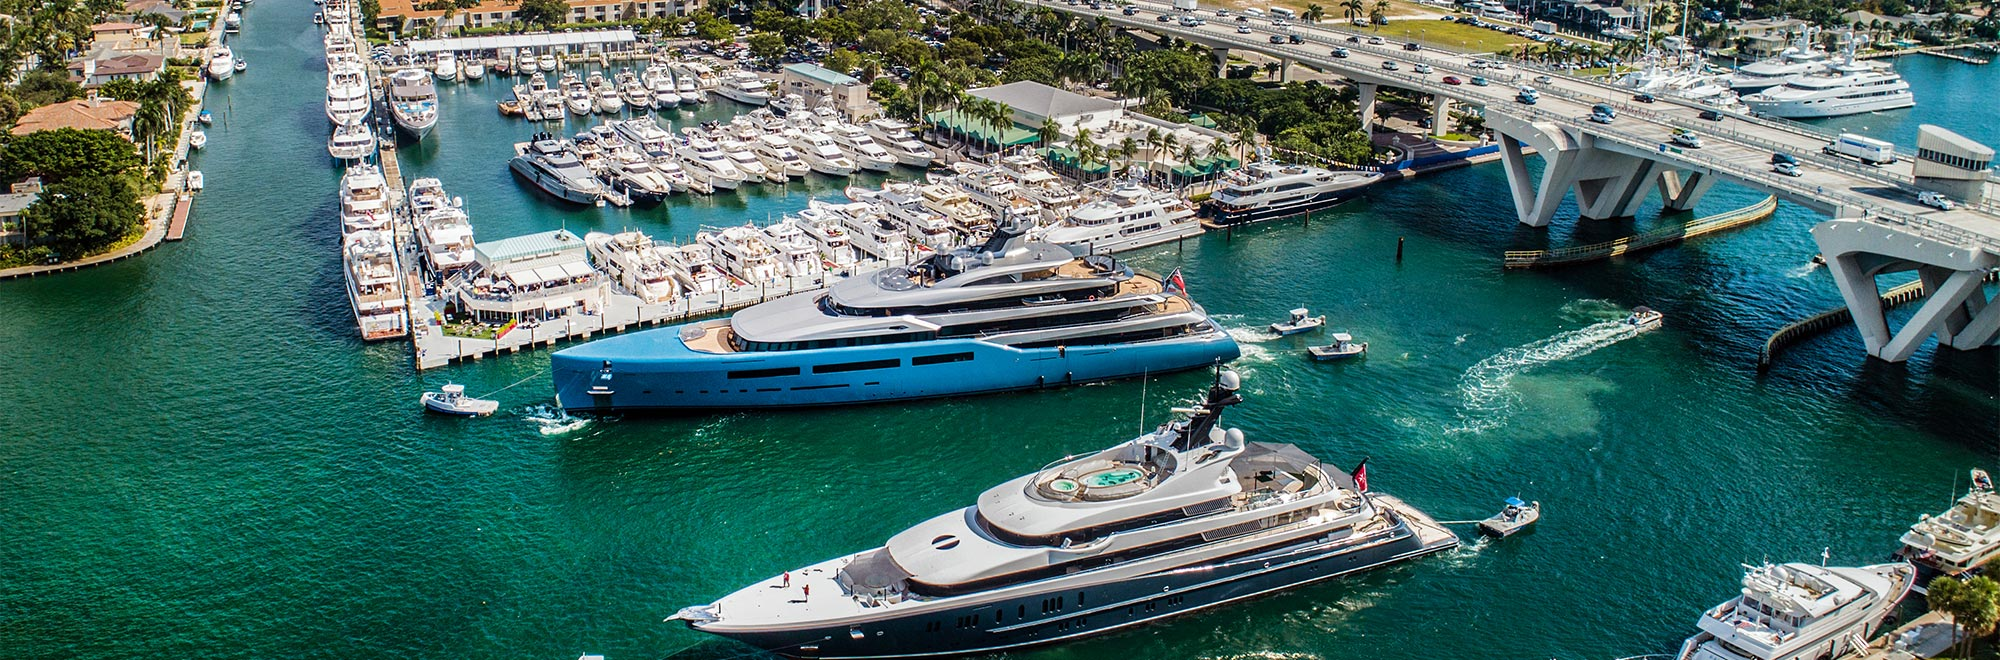 Fort Lauderdale International Boat Show | Luxury Yachts | Boats